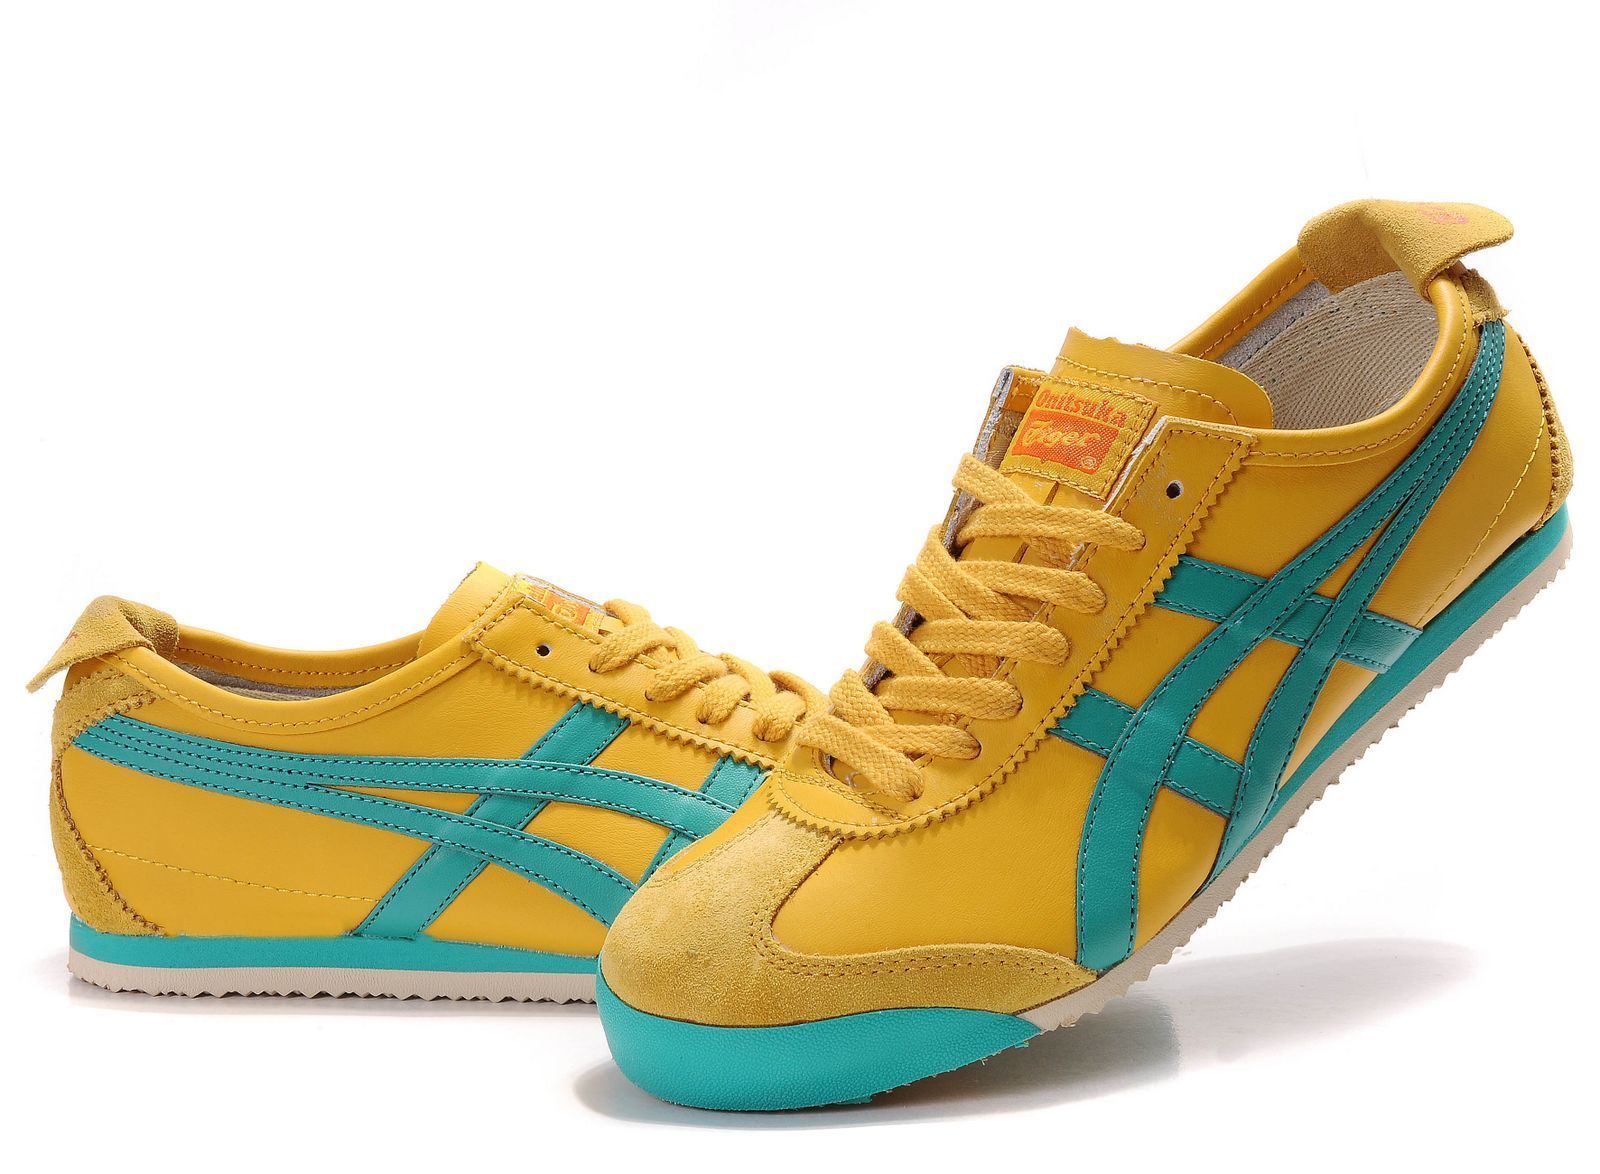 Onitsuka Tiger Mexico 66 Yellow/Green